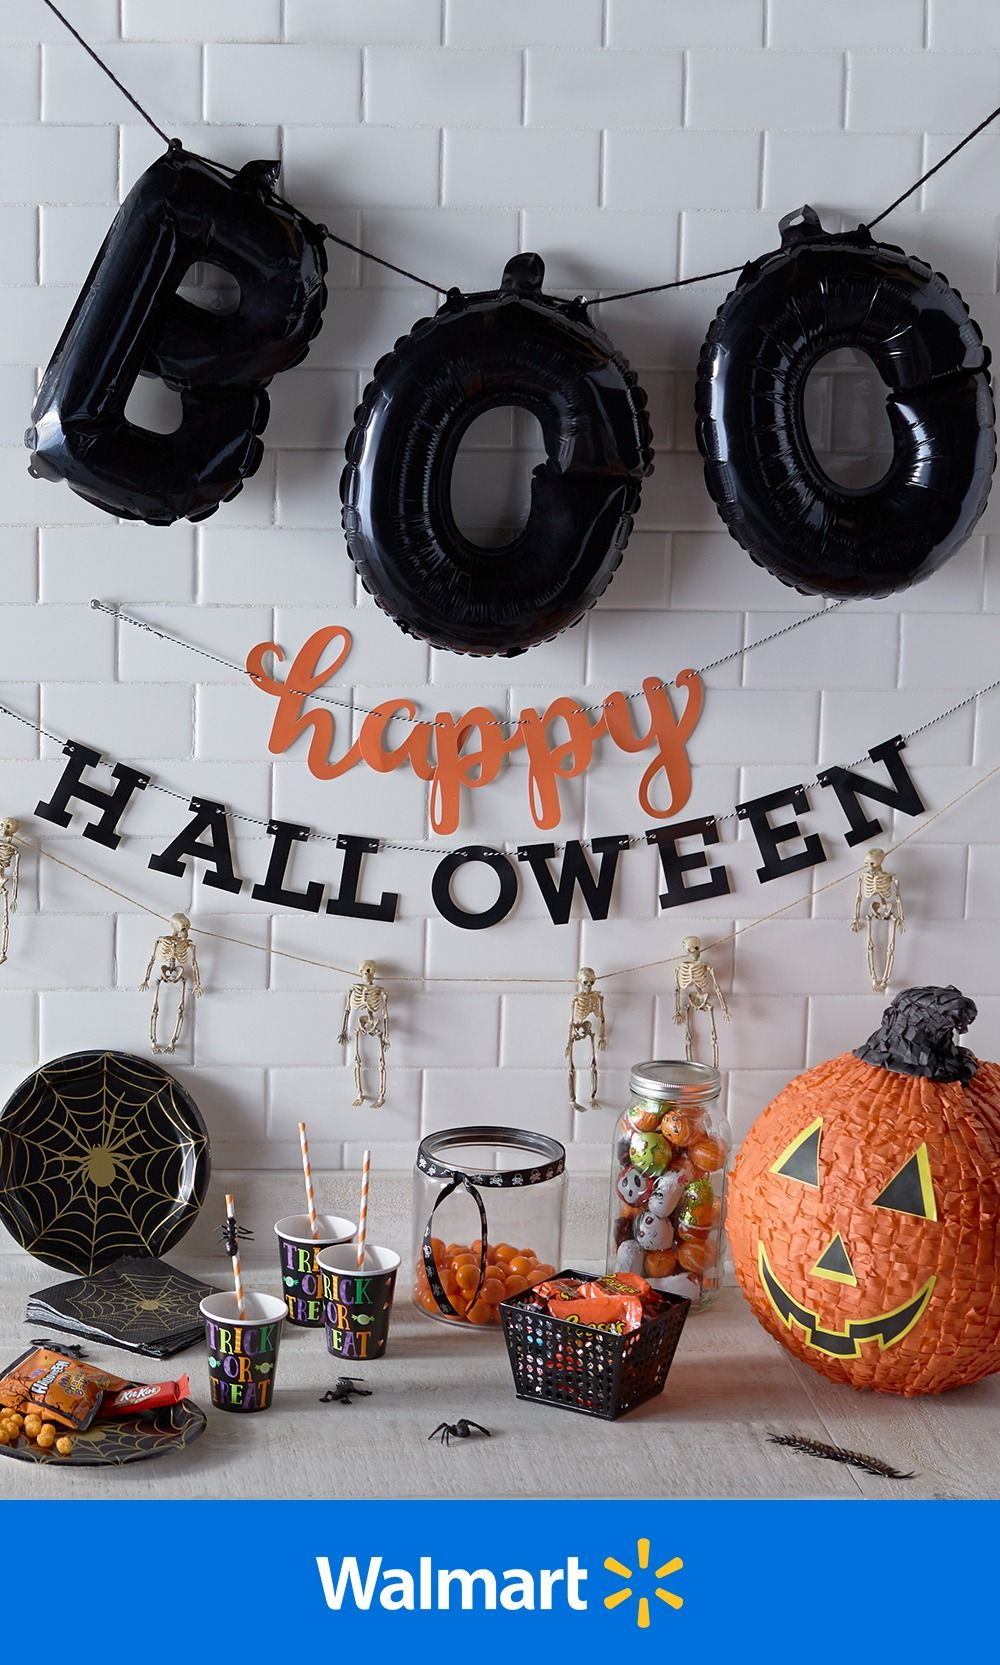 Get in the October spirit today and cover your home in eerie spider webs, playful bats, and pumpkins of all shapes and sizes. With loads of decor under $30, you can achieve floor-to-ceiling spookiness in a cinch